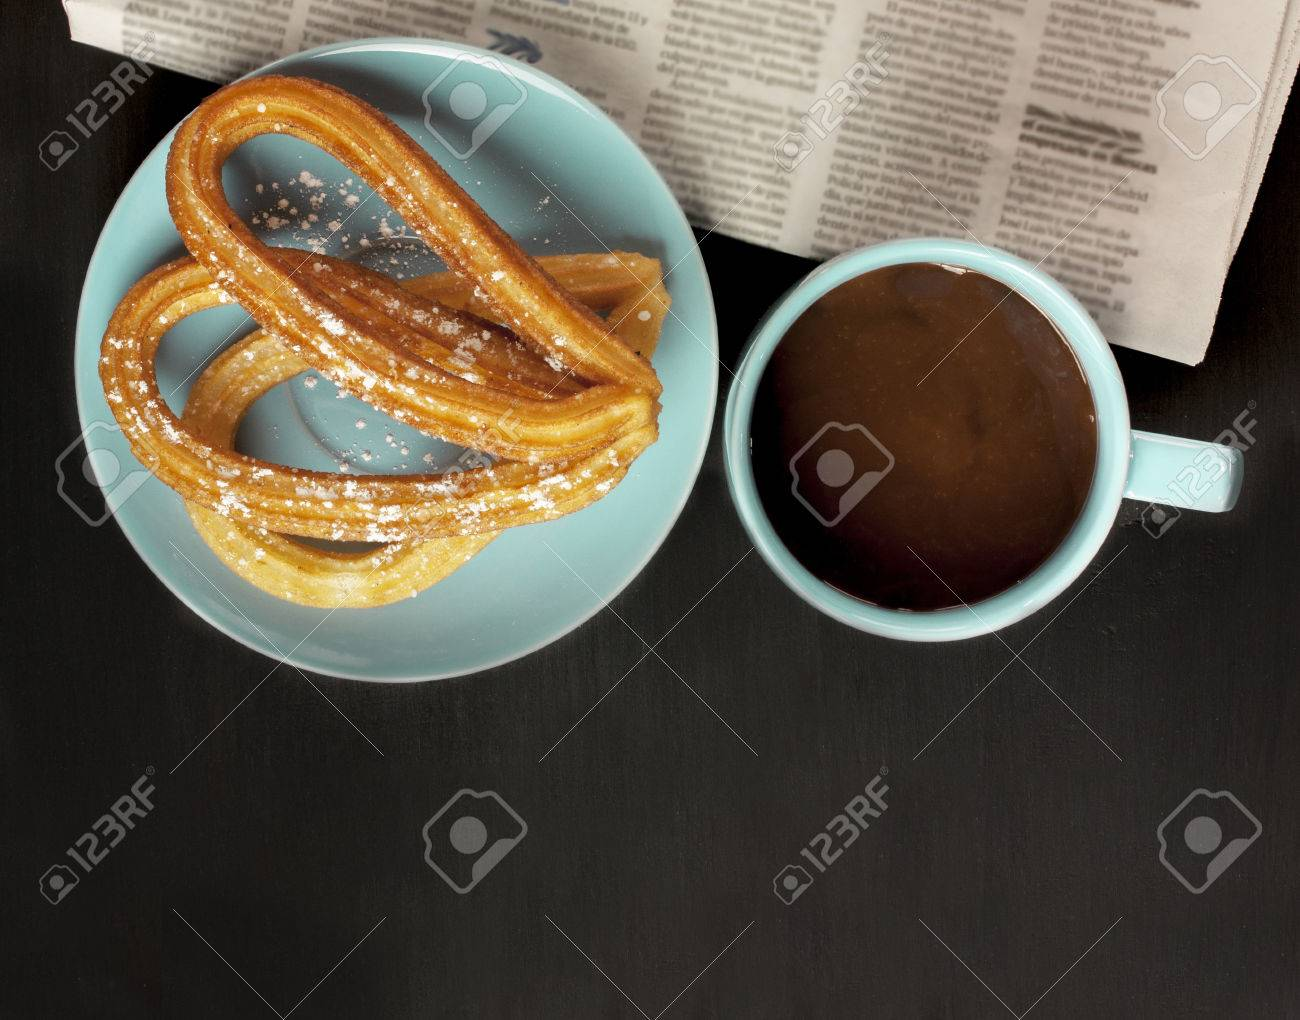 Plate of churros, traditional Spanish, especially Madrid, dessert, particularly for Sunday breakfast, with cup of hot chocolate, blurred newspaper, on dark wooden tabletop with copyspace - 66697756